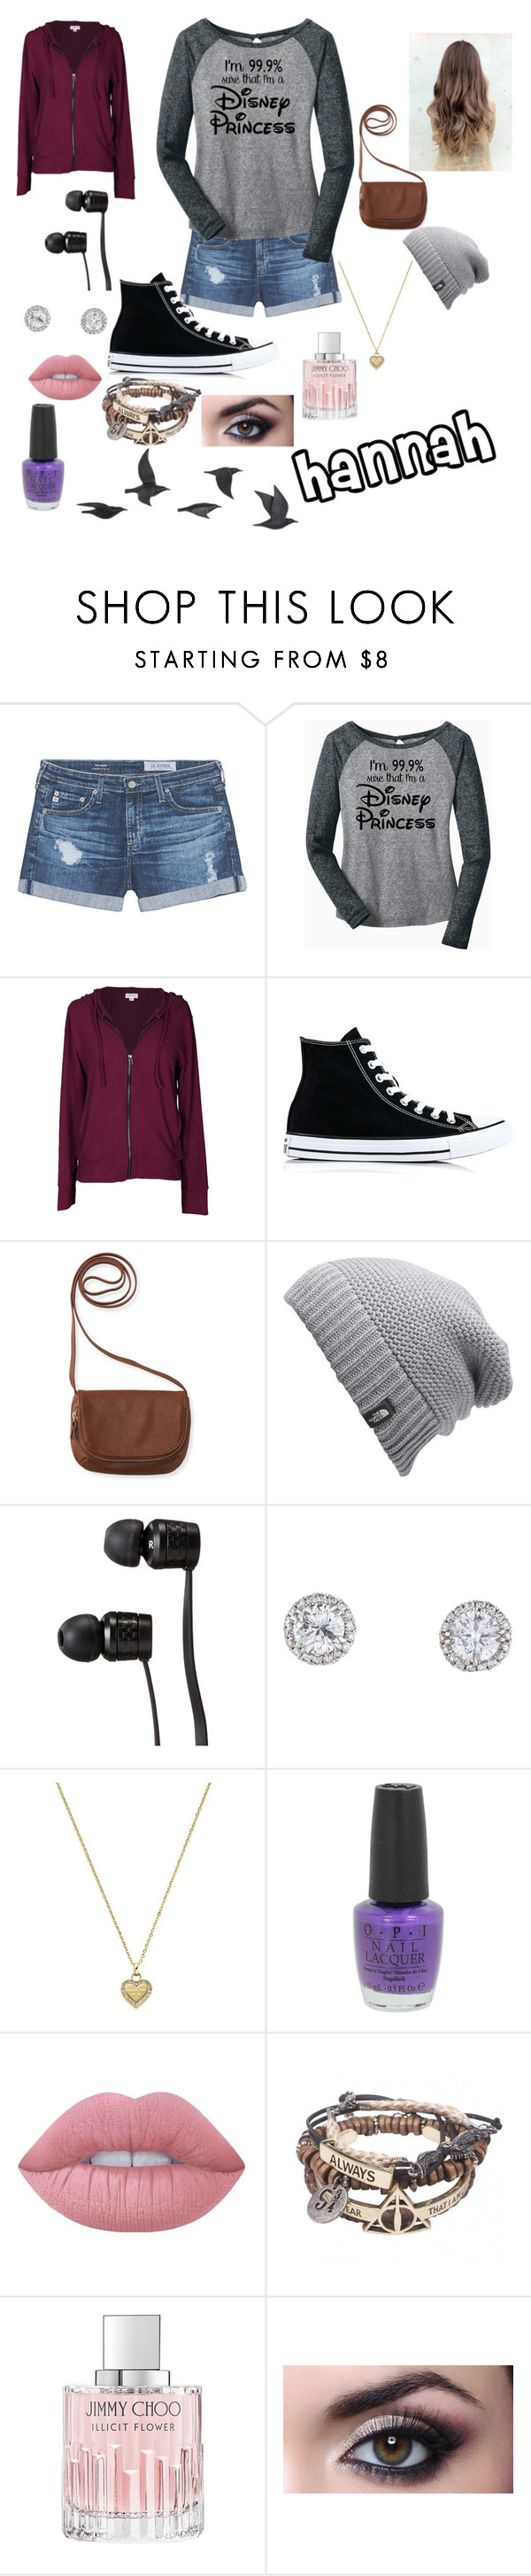 """Hannah"" by deadgirl2140 ❤ liked on Polyvore featuring AG Adriano Goldschmied, Velvet by Graham & Spencer, Converse, Aéropostale, The North Face, Vans, Michael Kors, OPI, Lime Crime and Jimmy Choo"